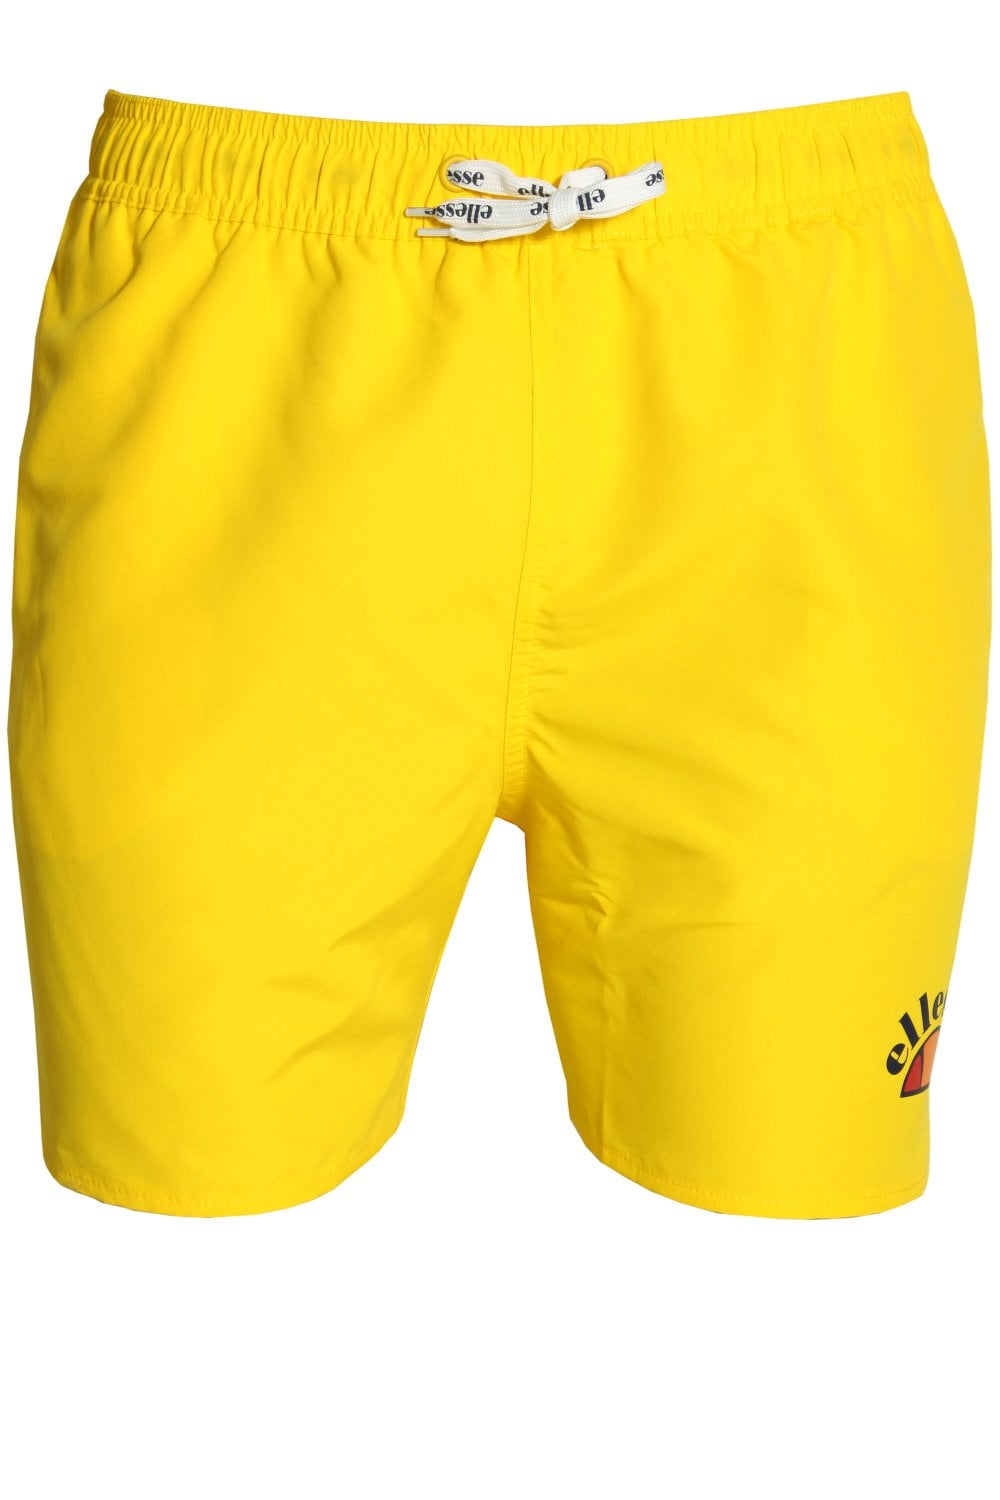 9fbc54ccec Ellesse Nono Mens Yellow Swim Shorts | Shop Ellesse Mens Swimwear